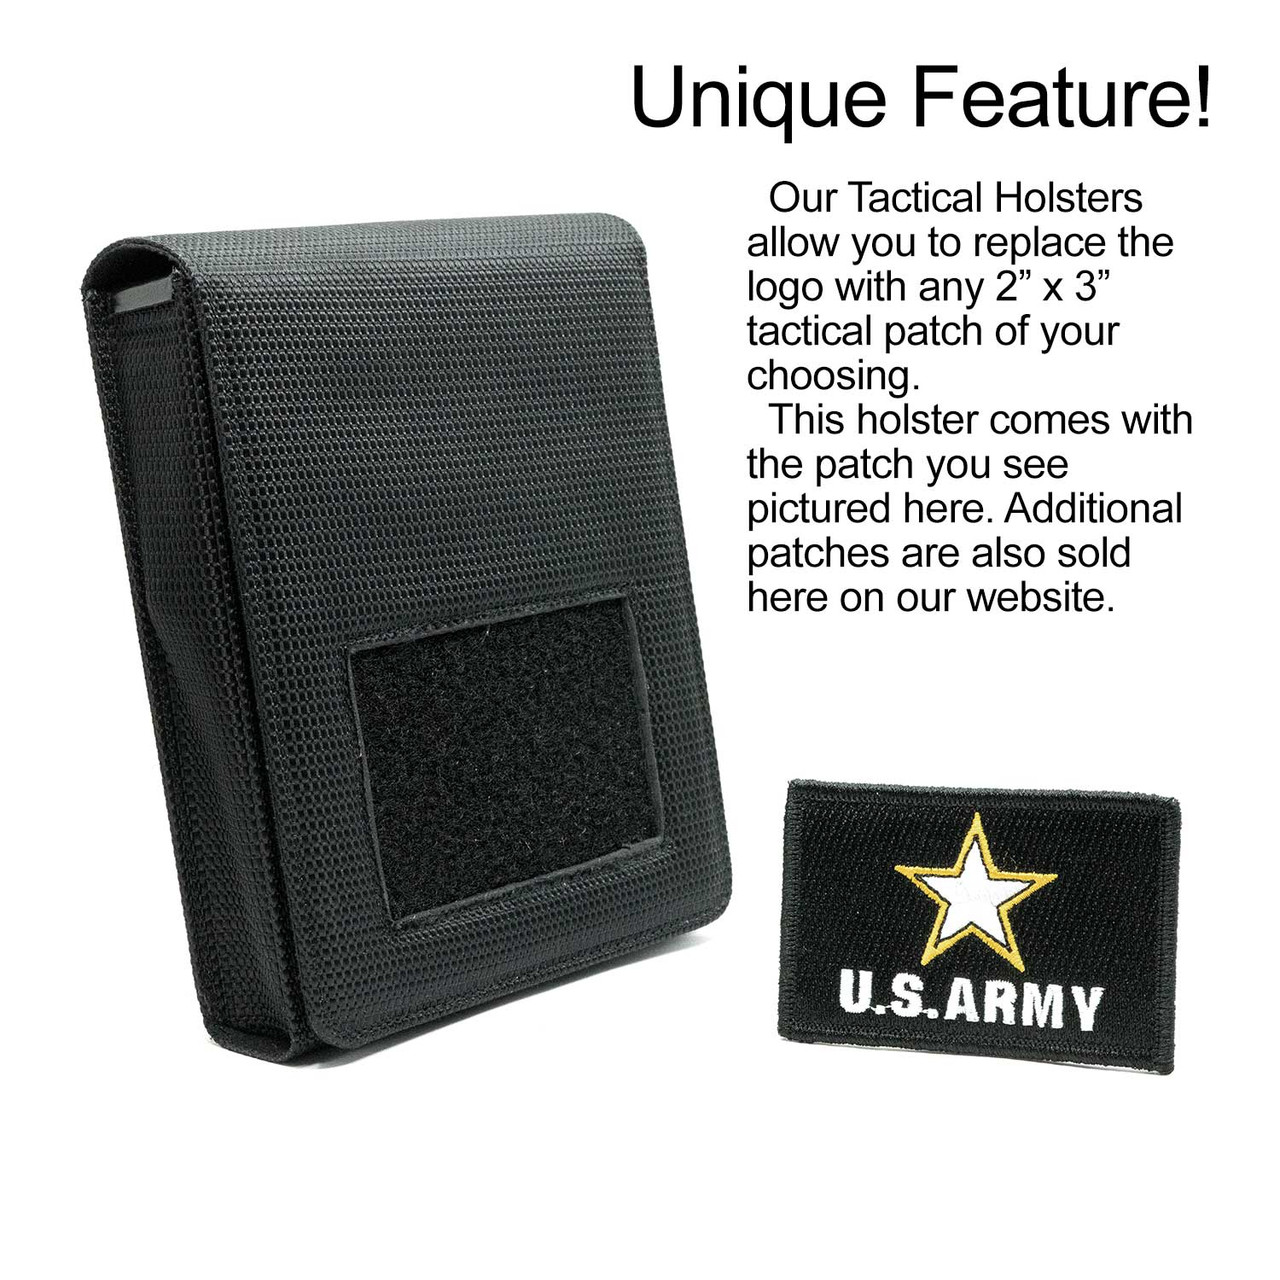 Glock 19X Army Tactical Patch Holster